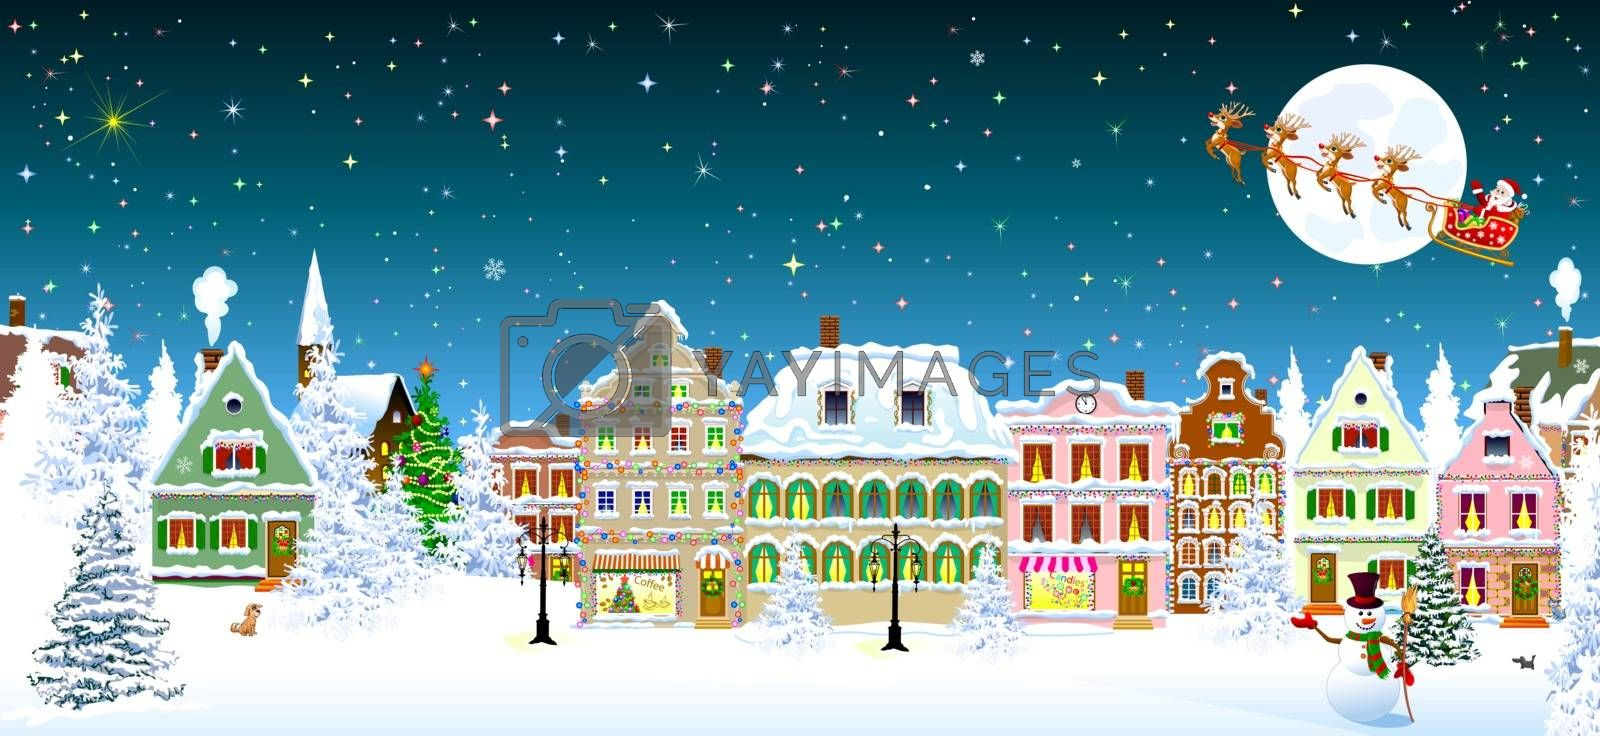 Houses, city, church, spruce. Winter city landscape. Christmas Eve night. Starry night sky. Santa Claus on a sleigh with deers on the background of the moon. Snowman.